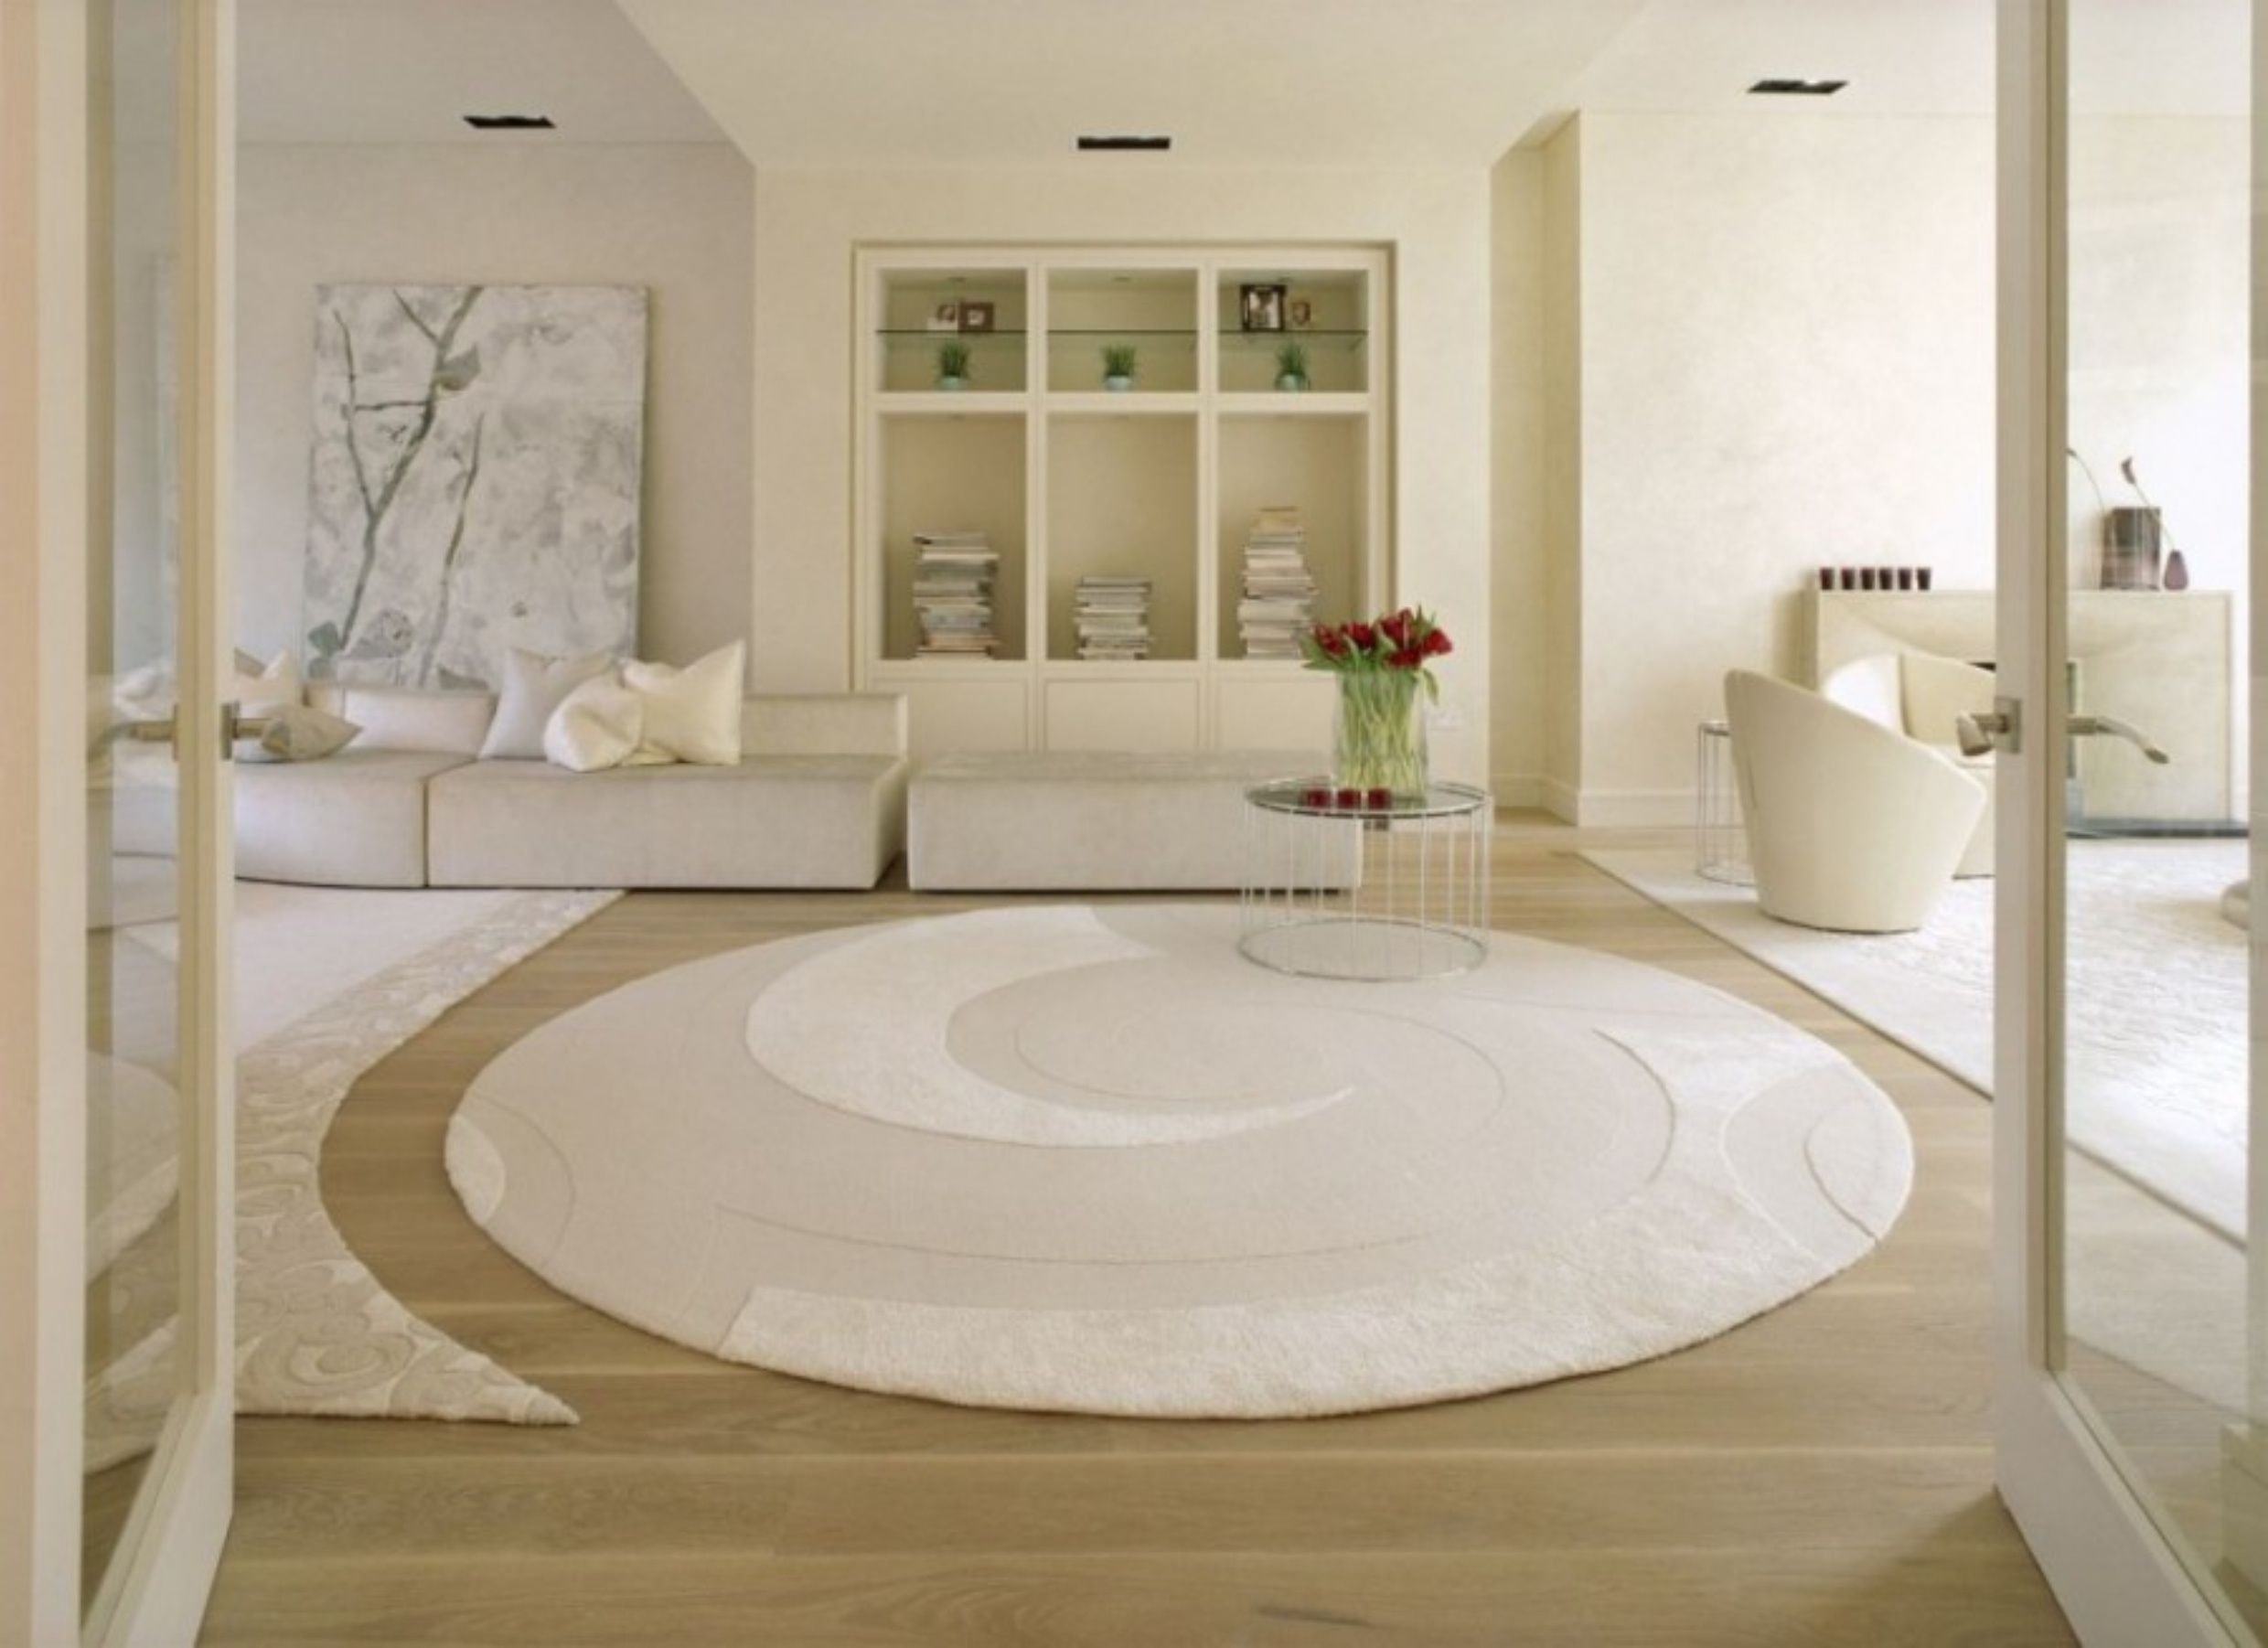 White Round Extra Large Bathroom Rug Large Bathroom Rugs - Small bathroom rugs for bathroom decorating ideas